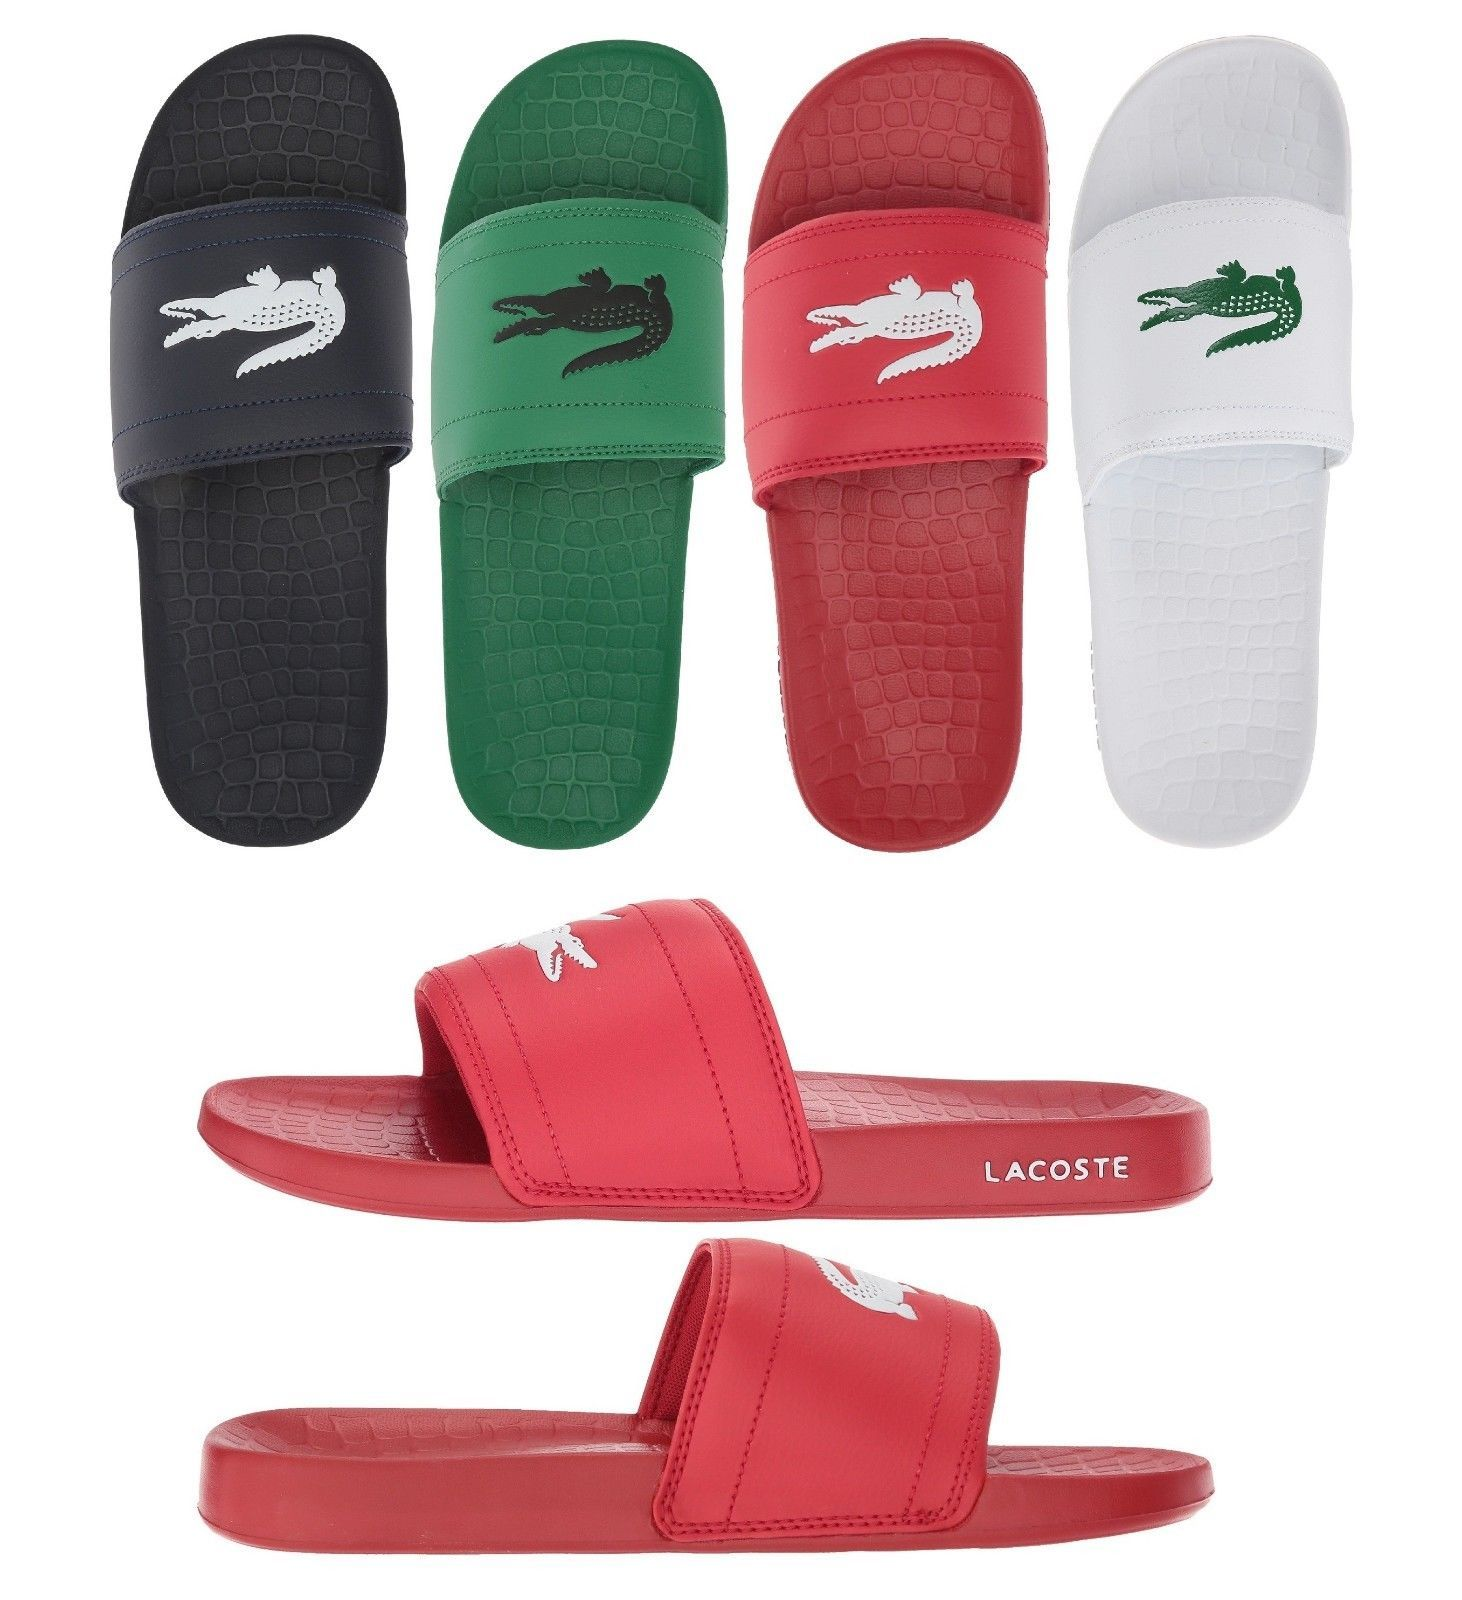 67cc923a Sandals and Flip Flops 11504: New Lacoste Men S Fraisier 118 1 ...